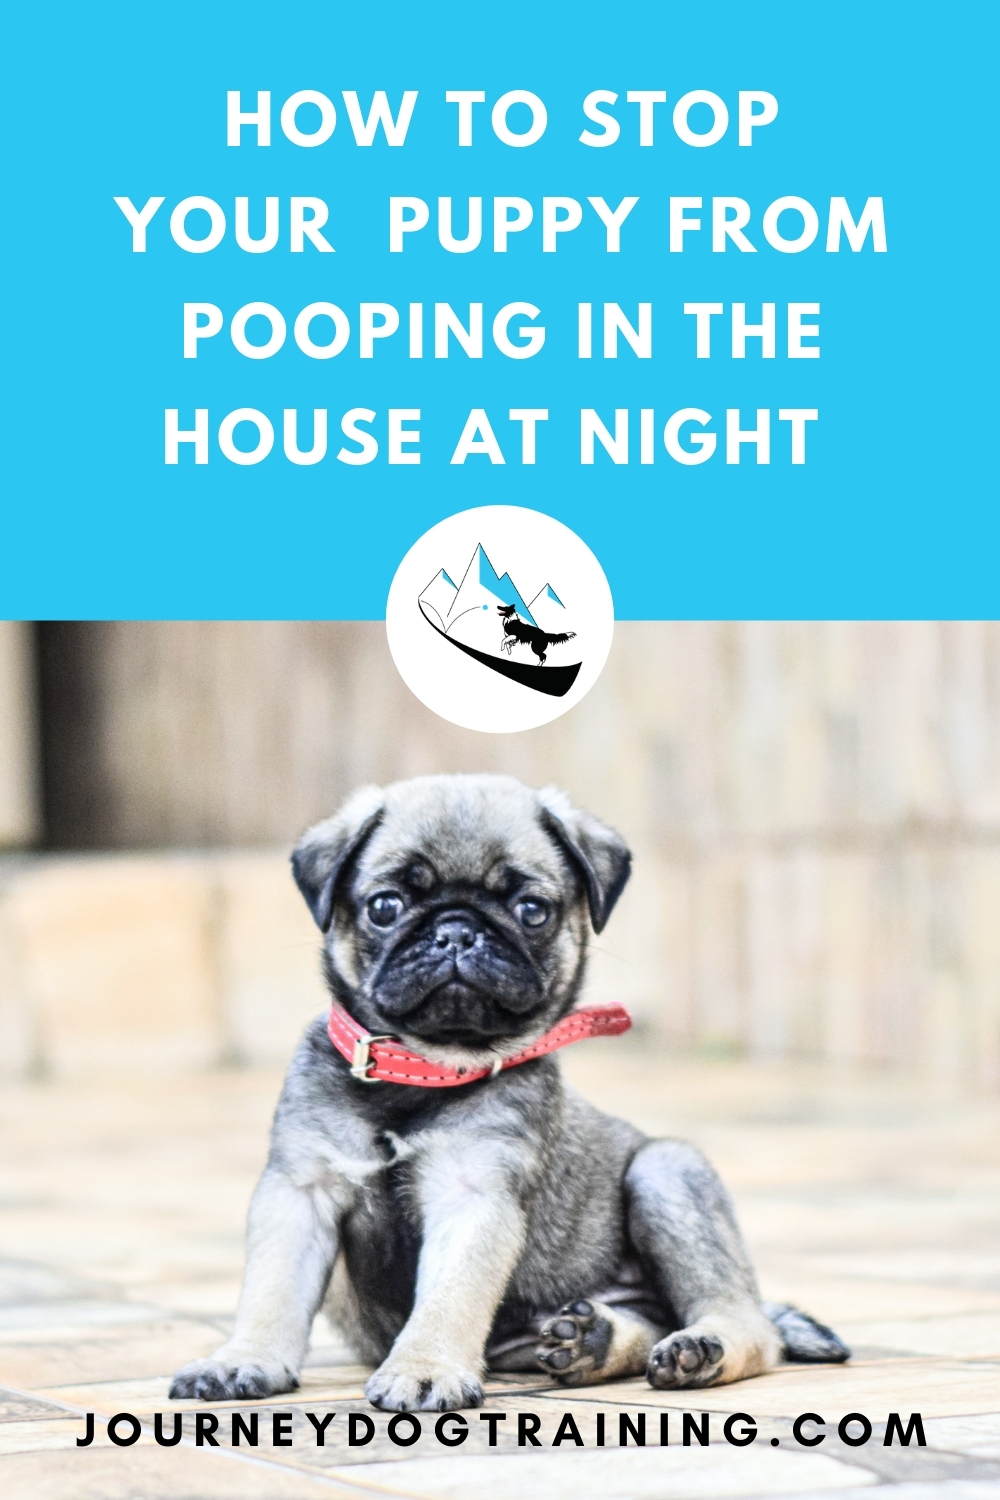 how to stop your puppy from pooping in the house at night | journeydogtraining.com